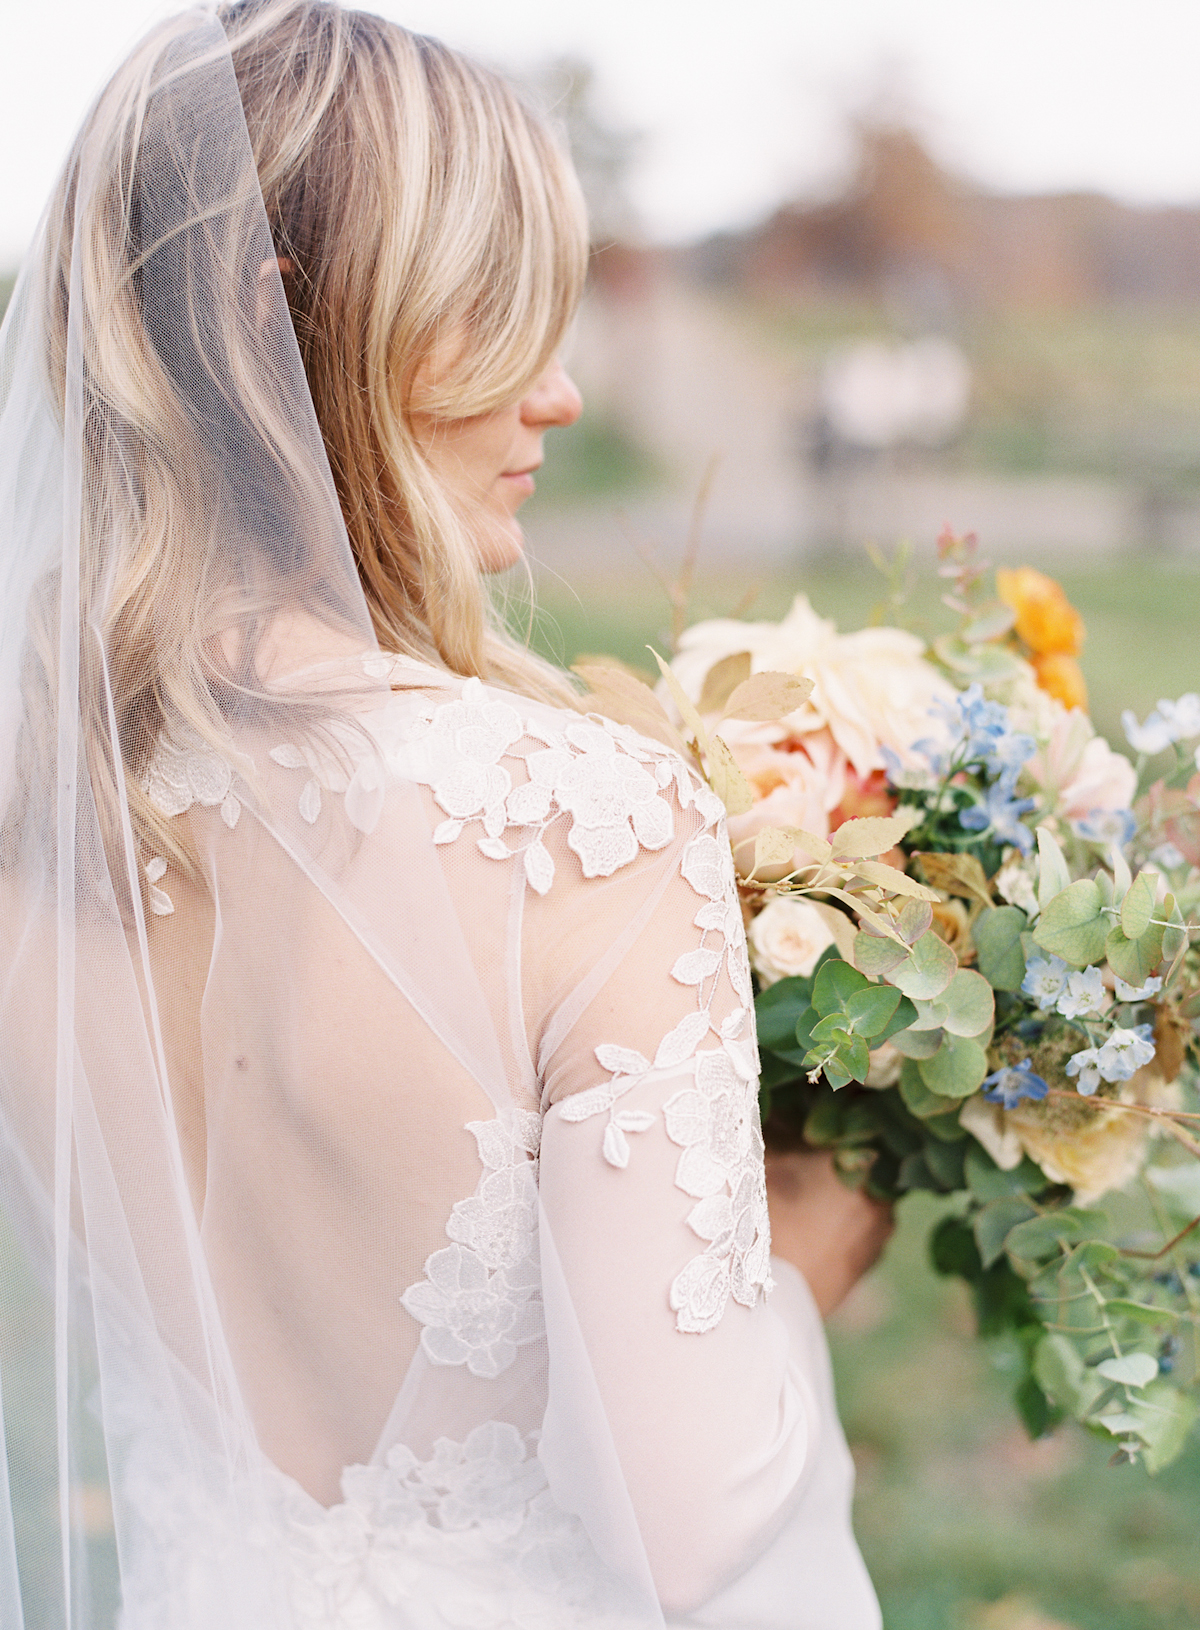 Blue Hill at Stone Barns wedding, event planner Ang Weddings and Events, photography Judy Pak, bouquet Saipua, bride in lace wedding gown